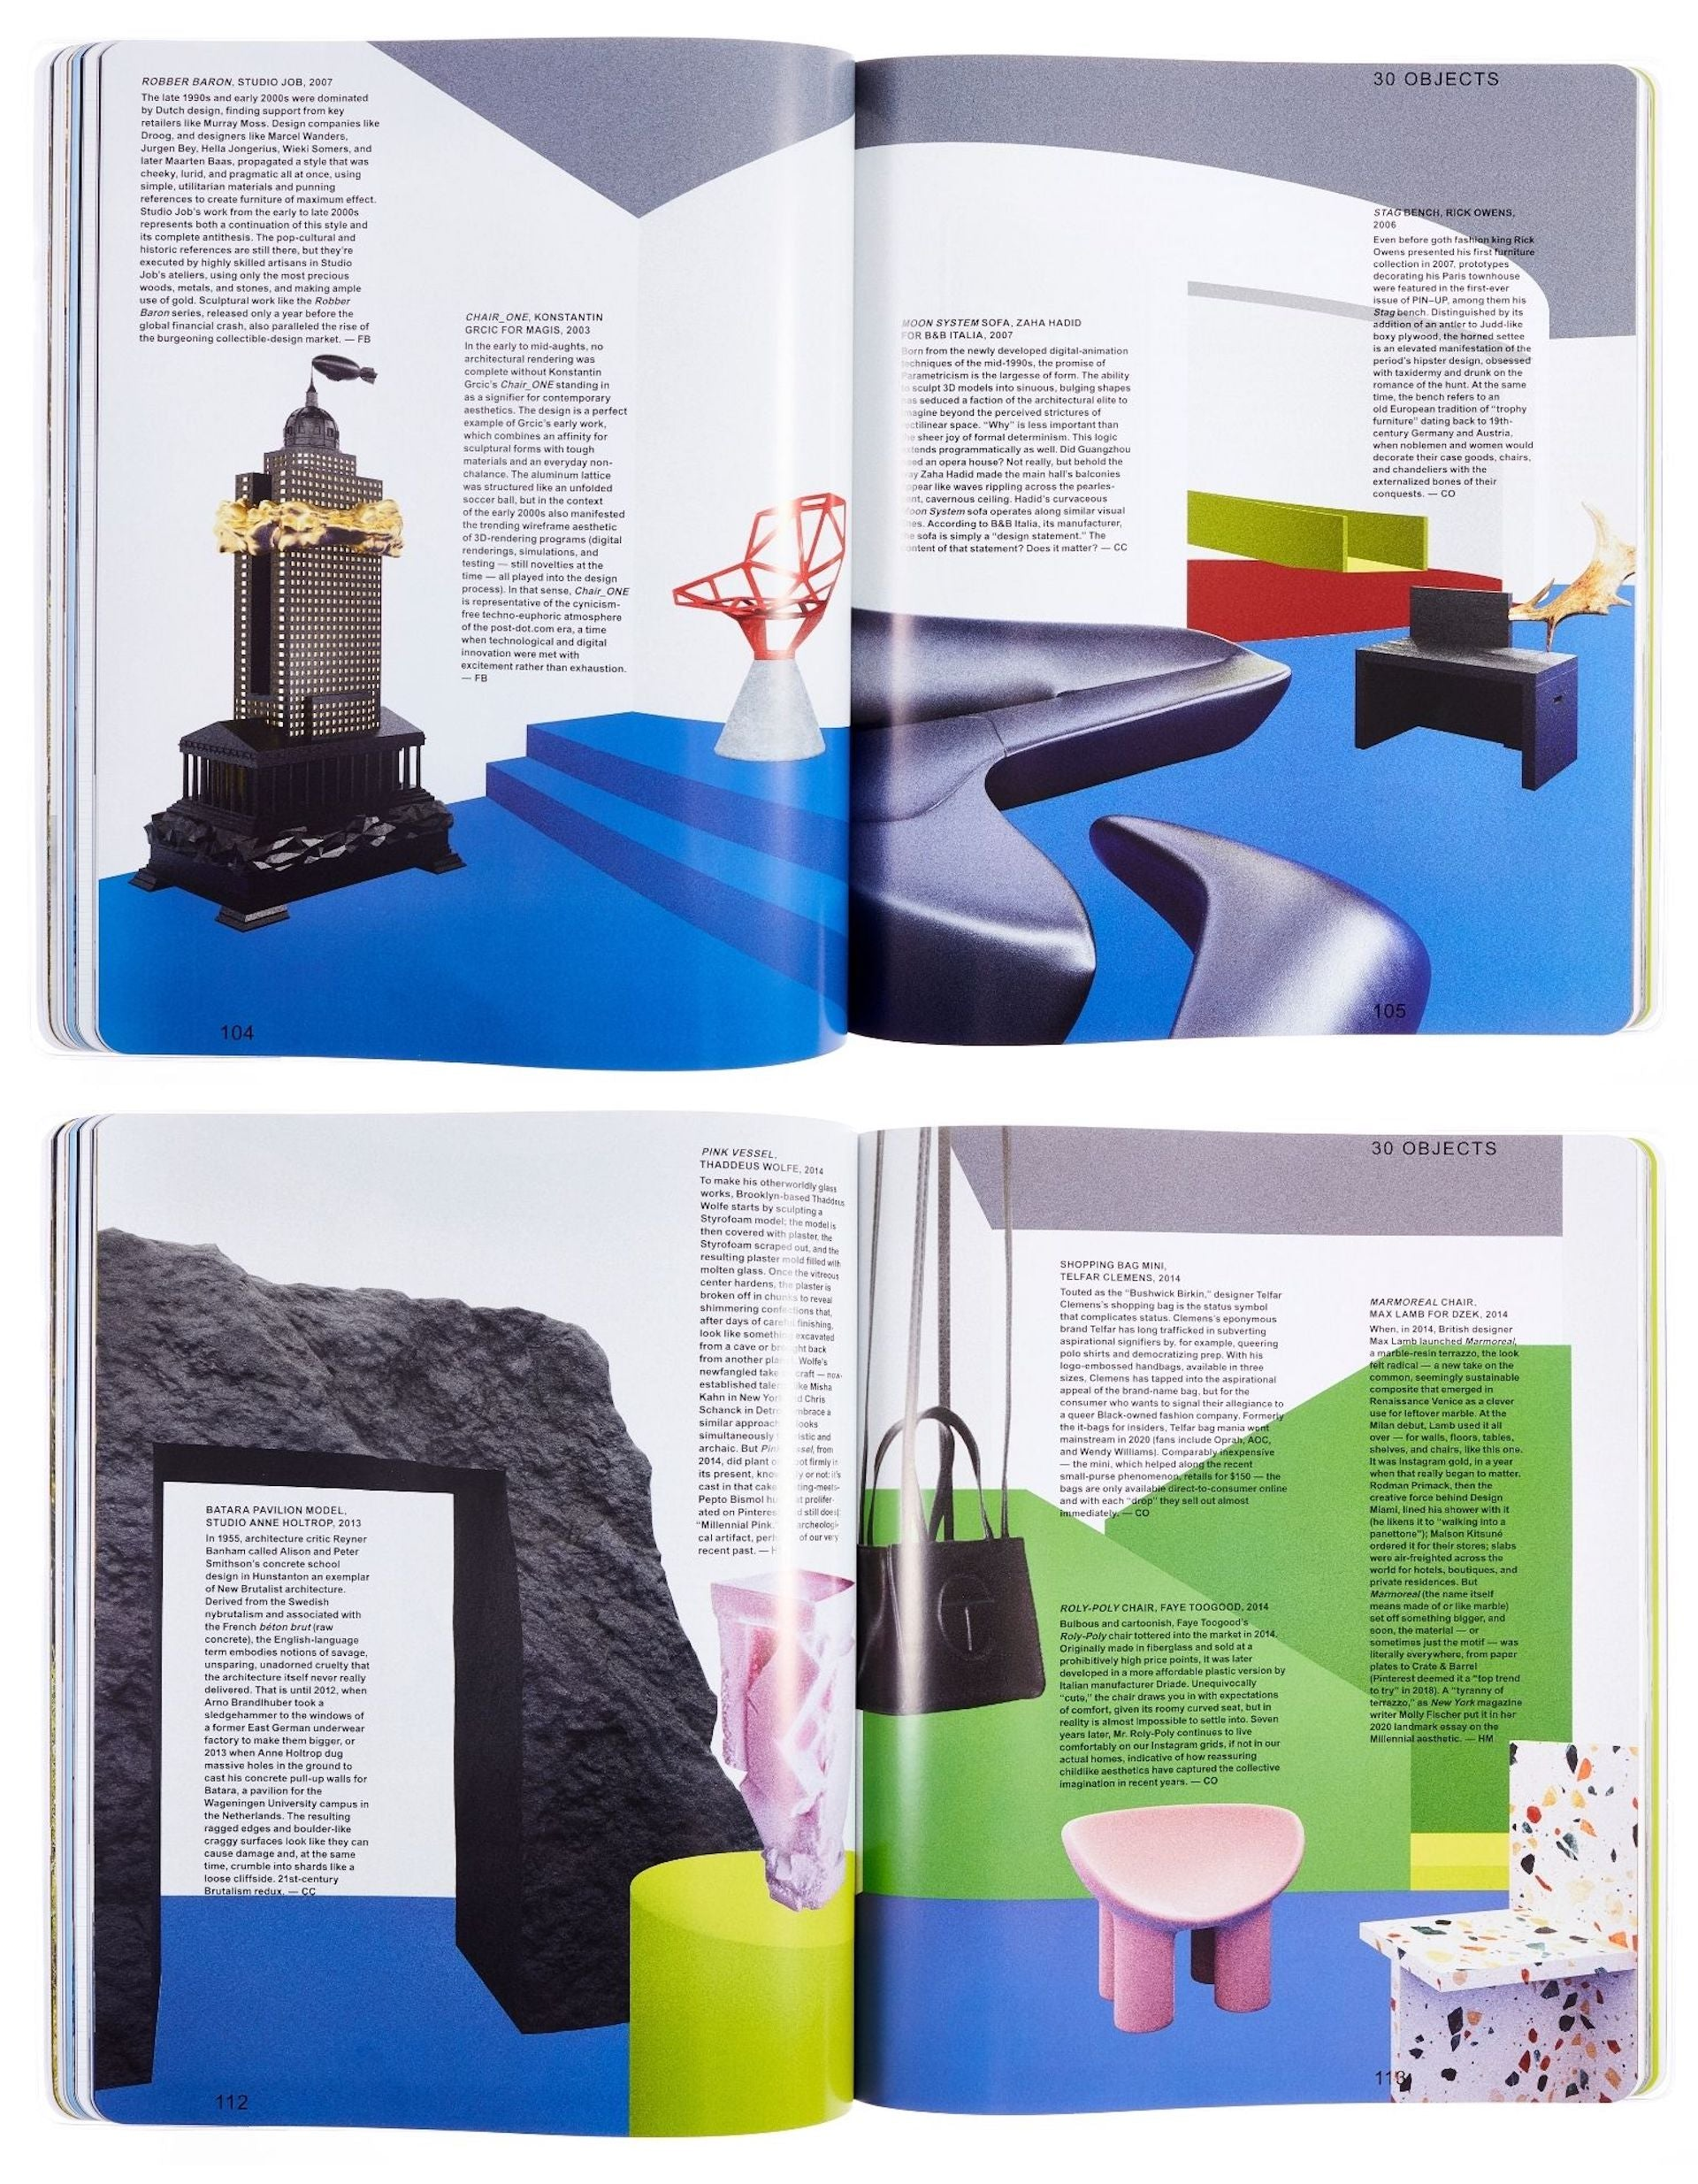 Curated by Felix Burrichter and Camille Okhio, 30 Objects is a virtual survey show about design in the first two decades of the 21st century. Renderings by Rubén Gutierrez Martín. Art Direction by Felix Burrichter and Office Ben Ganz. Photos © PIN-UP